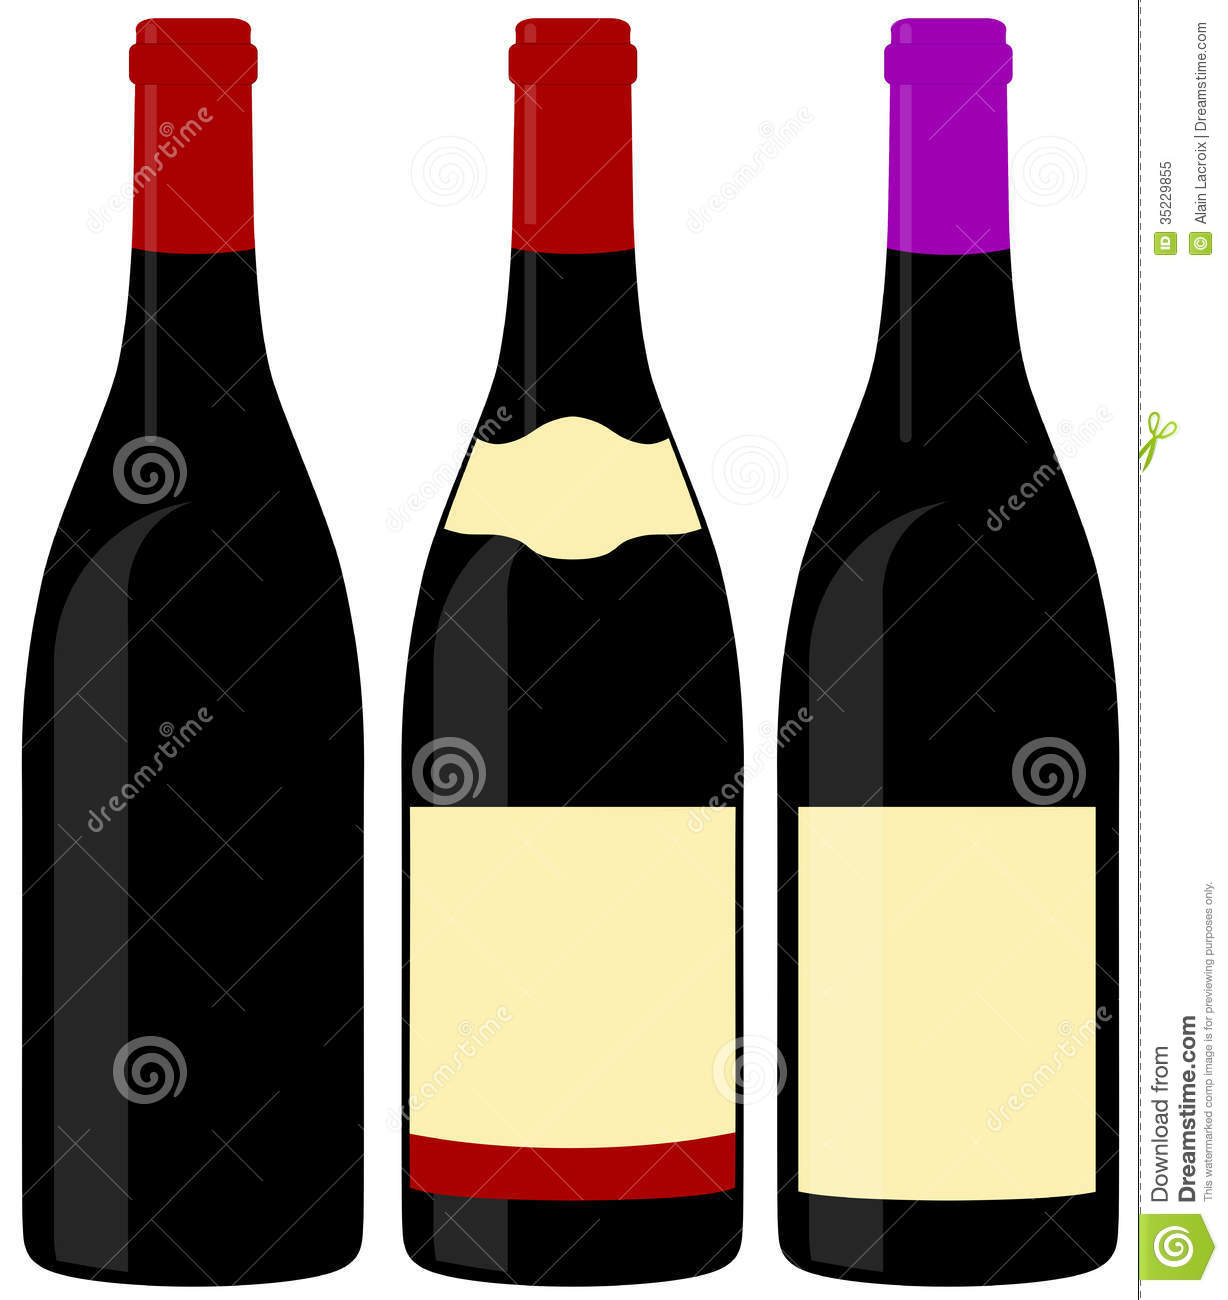 Wine bottles royalty free stock photo image 35229855 for Where to buy colored wine bottles